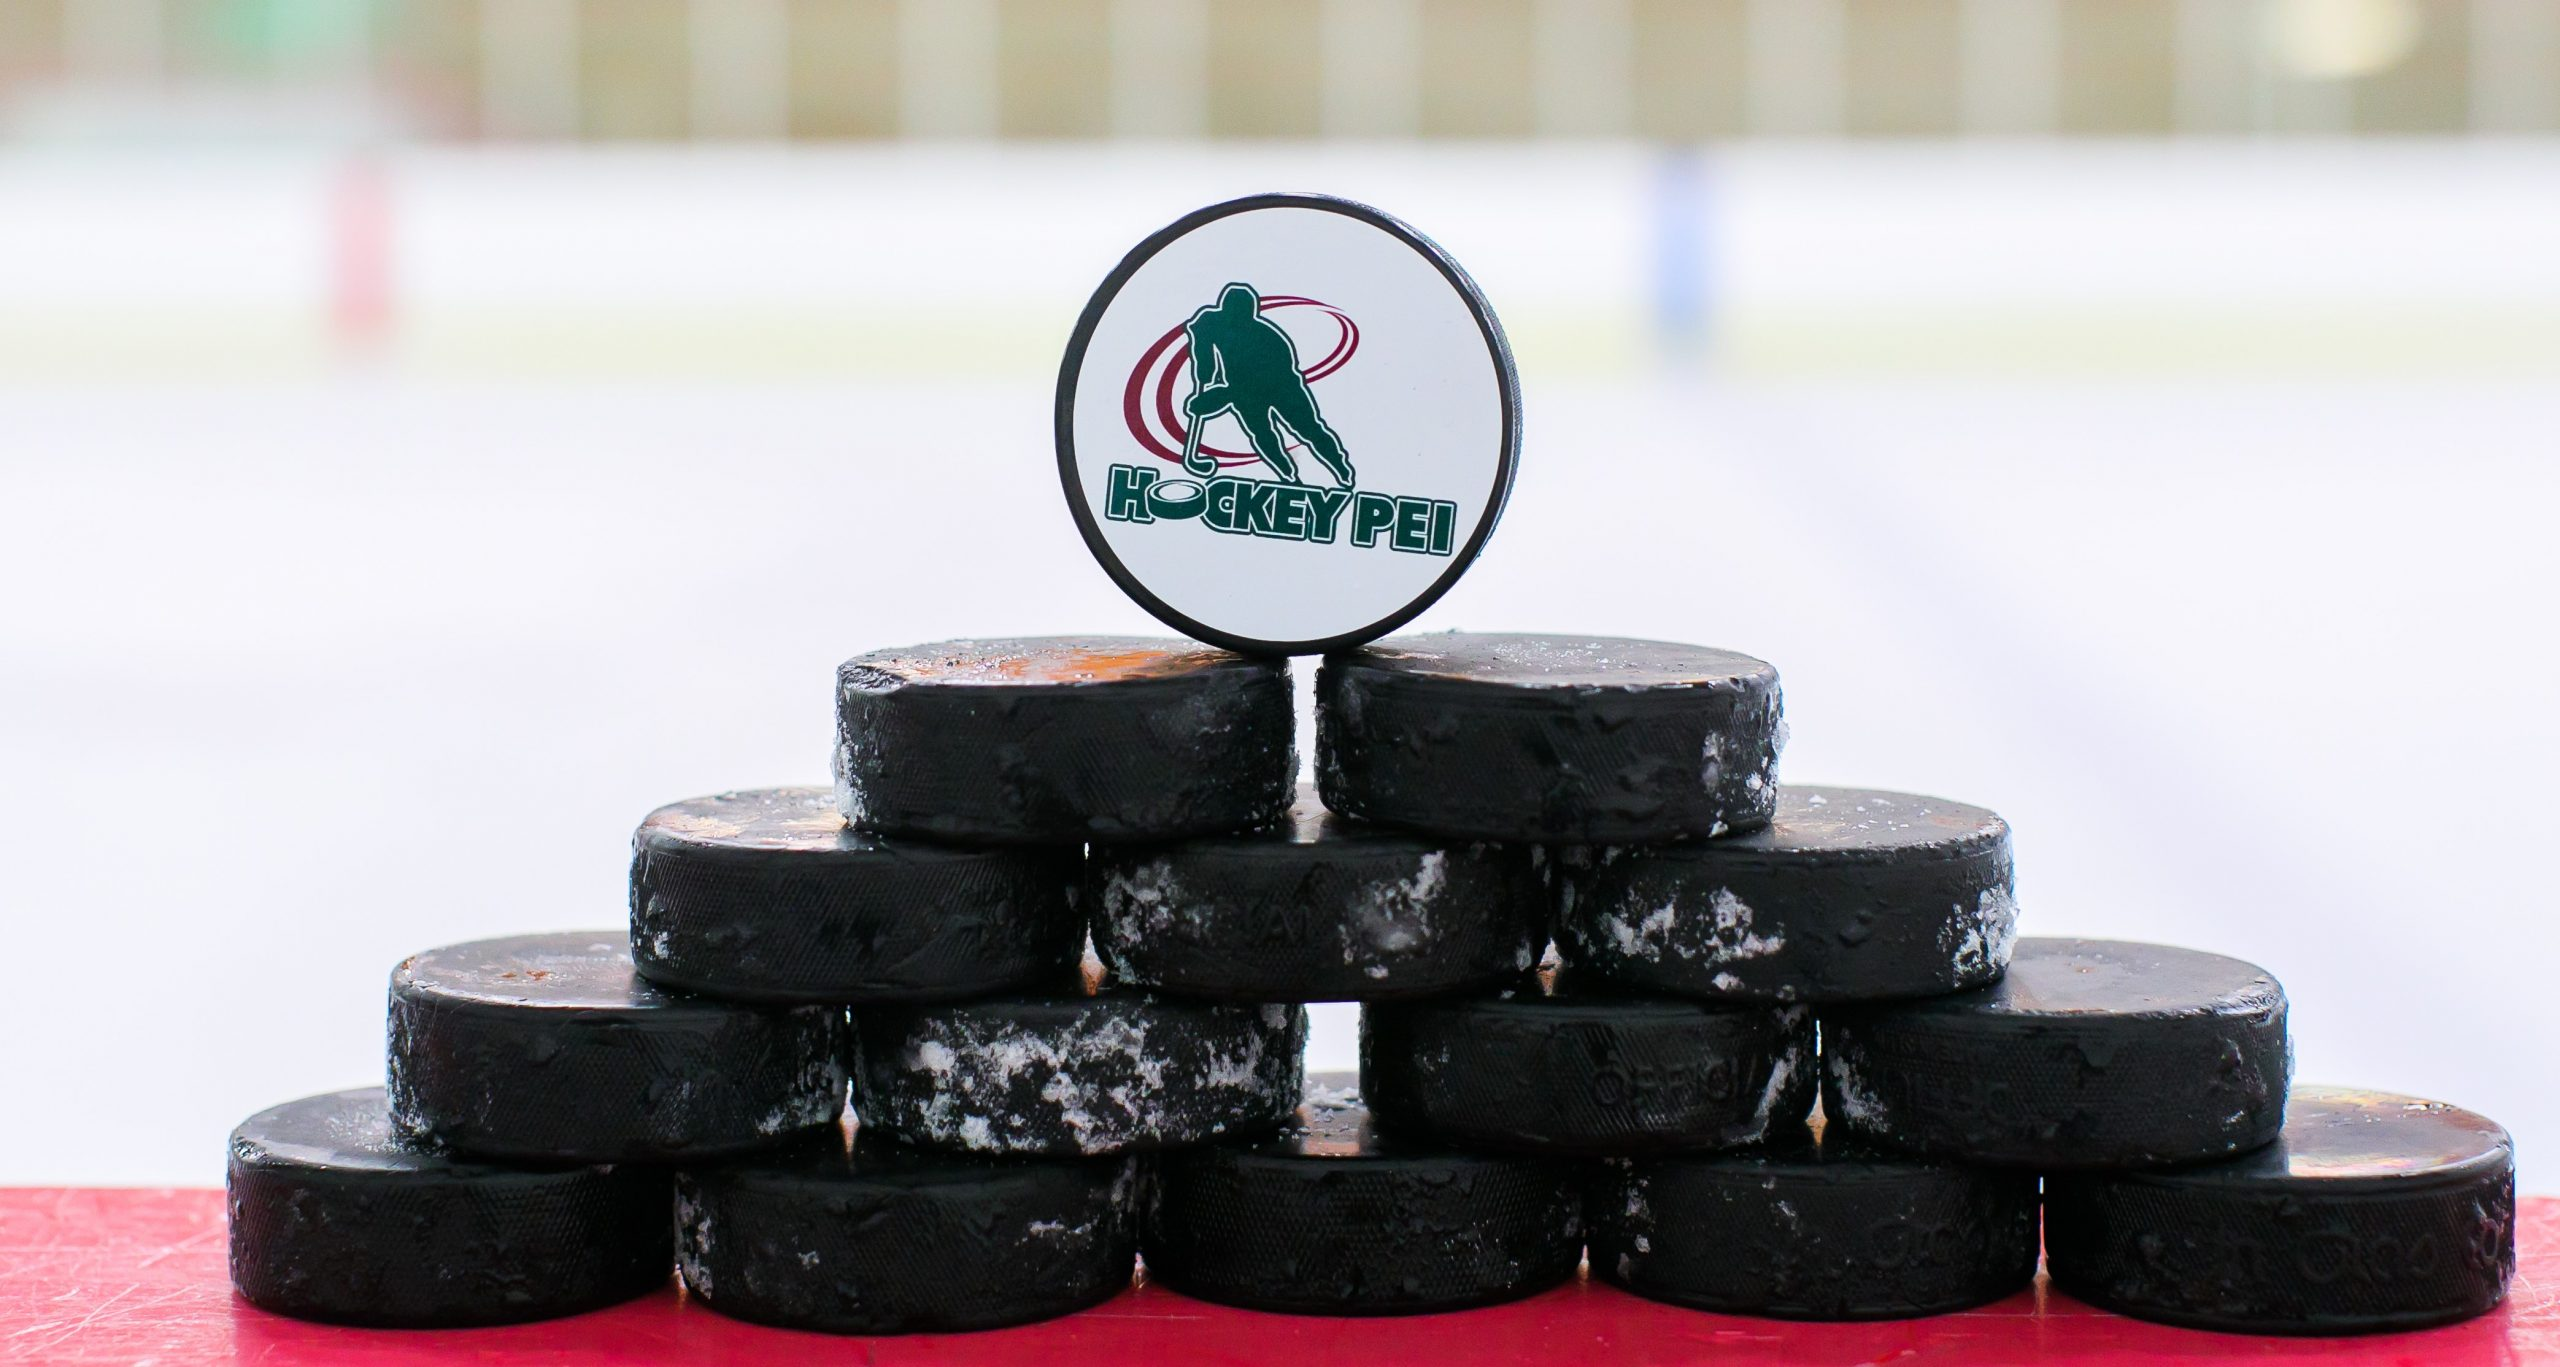 HOCKEY PEI ANNOUNCES 2021 PROVINCIAL CHAMPIONSHIP LOCATIONS